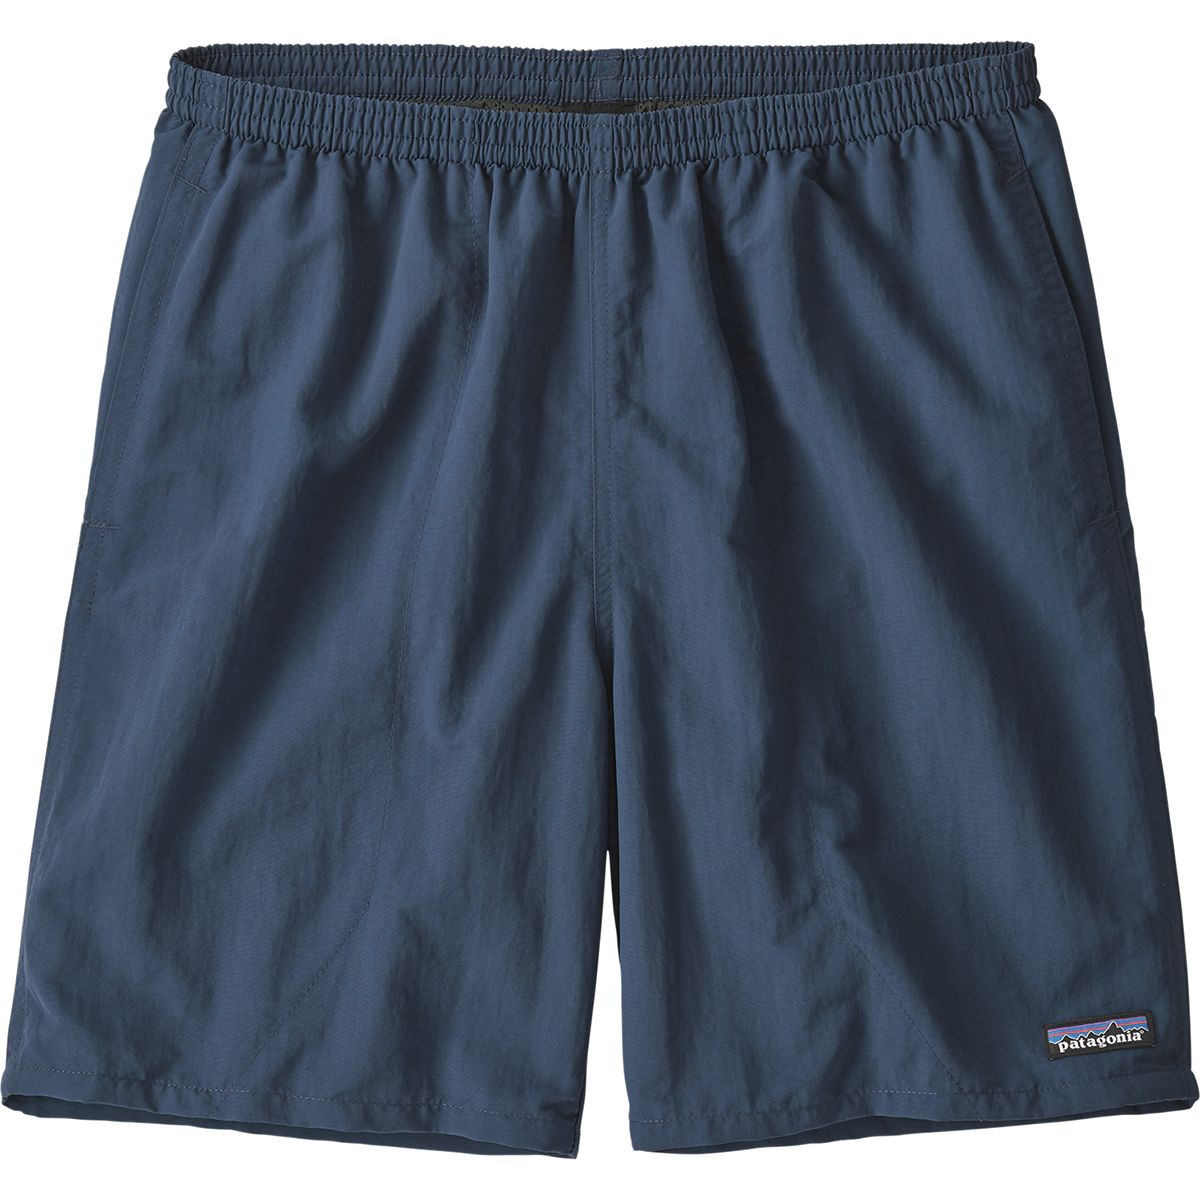 Scenic Oregon 7 Day Road Trip Exploring the Mountains and Coast- Swimsuit Shorts